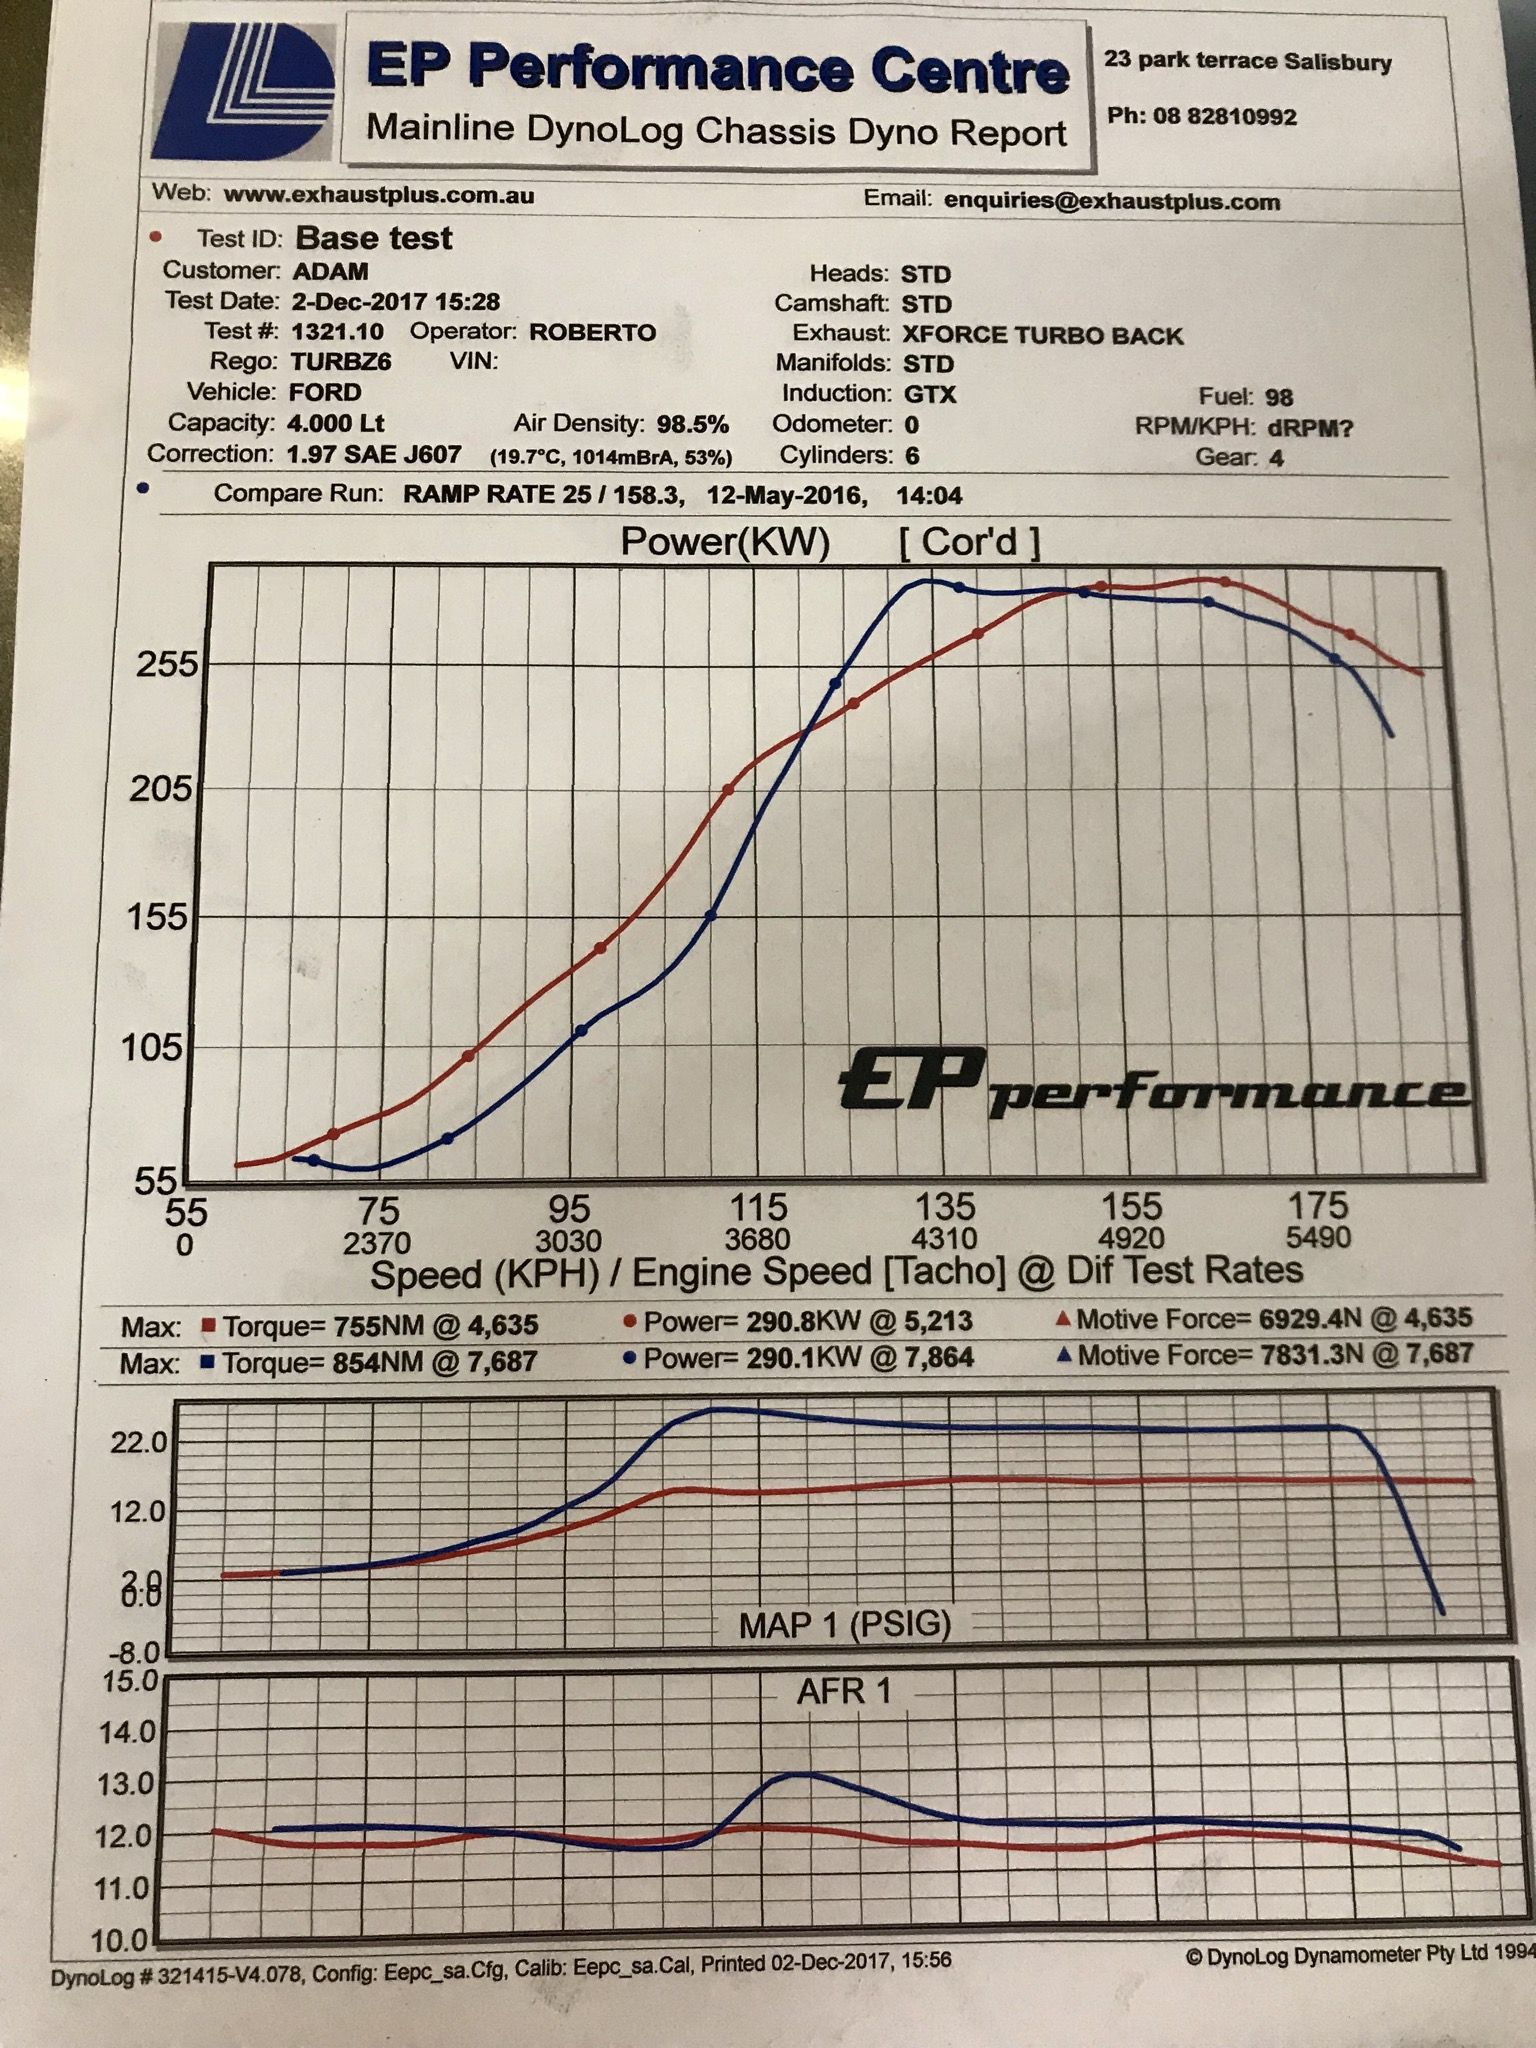 Jets Tuning Oh No Page 171 Ecu Workshop Ford Xr6 Turbocom Mad Max Engine Diagram Now Im Not Going To Say 26psi On A Stock Ba Bottom End Isnt Fully Sick But The Lean Spot As Its Being Is Dangerous Rotating